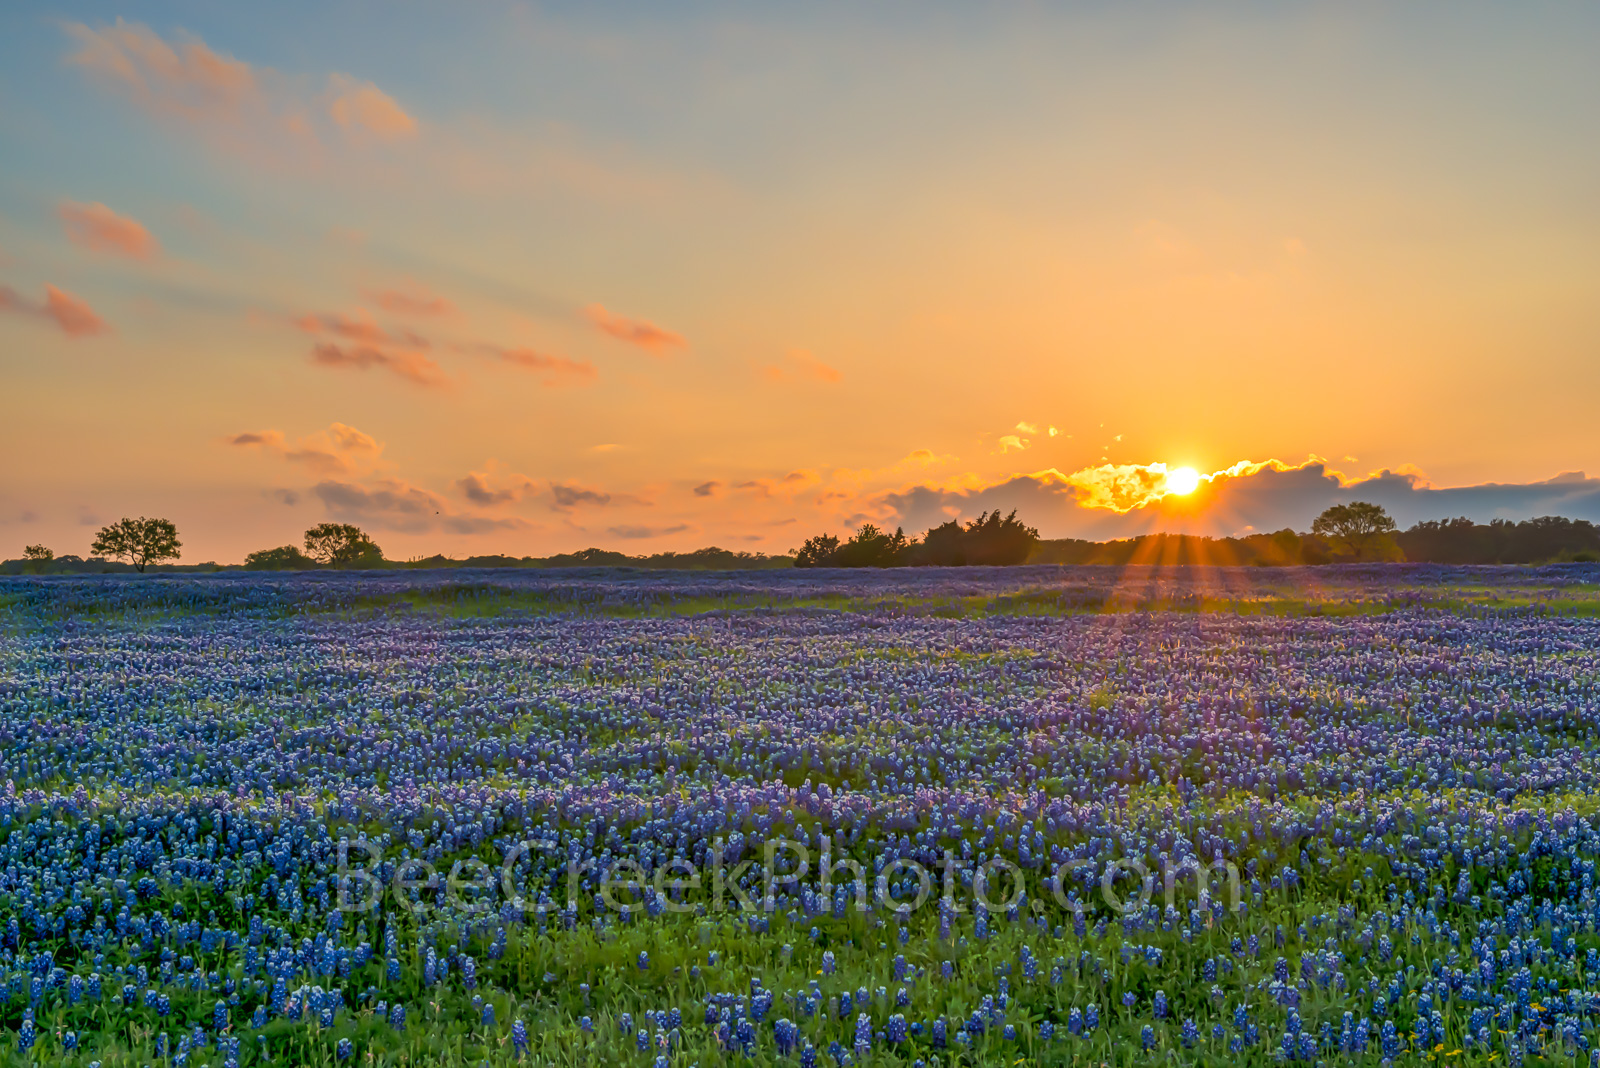 Sunset Bluebonnets-2 - We capture this wonderful field of bluebonnets at sunset in the Texas Hill Country. We have some outstanding...